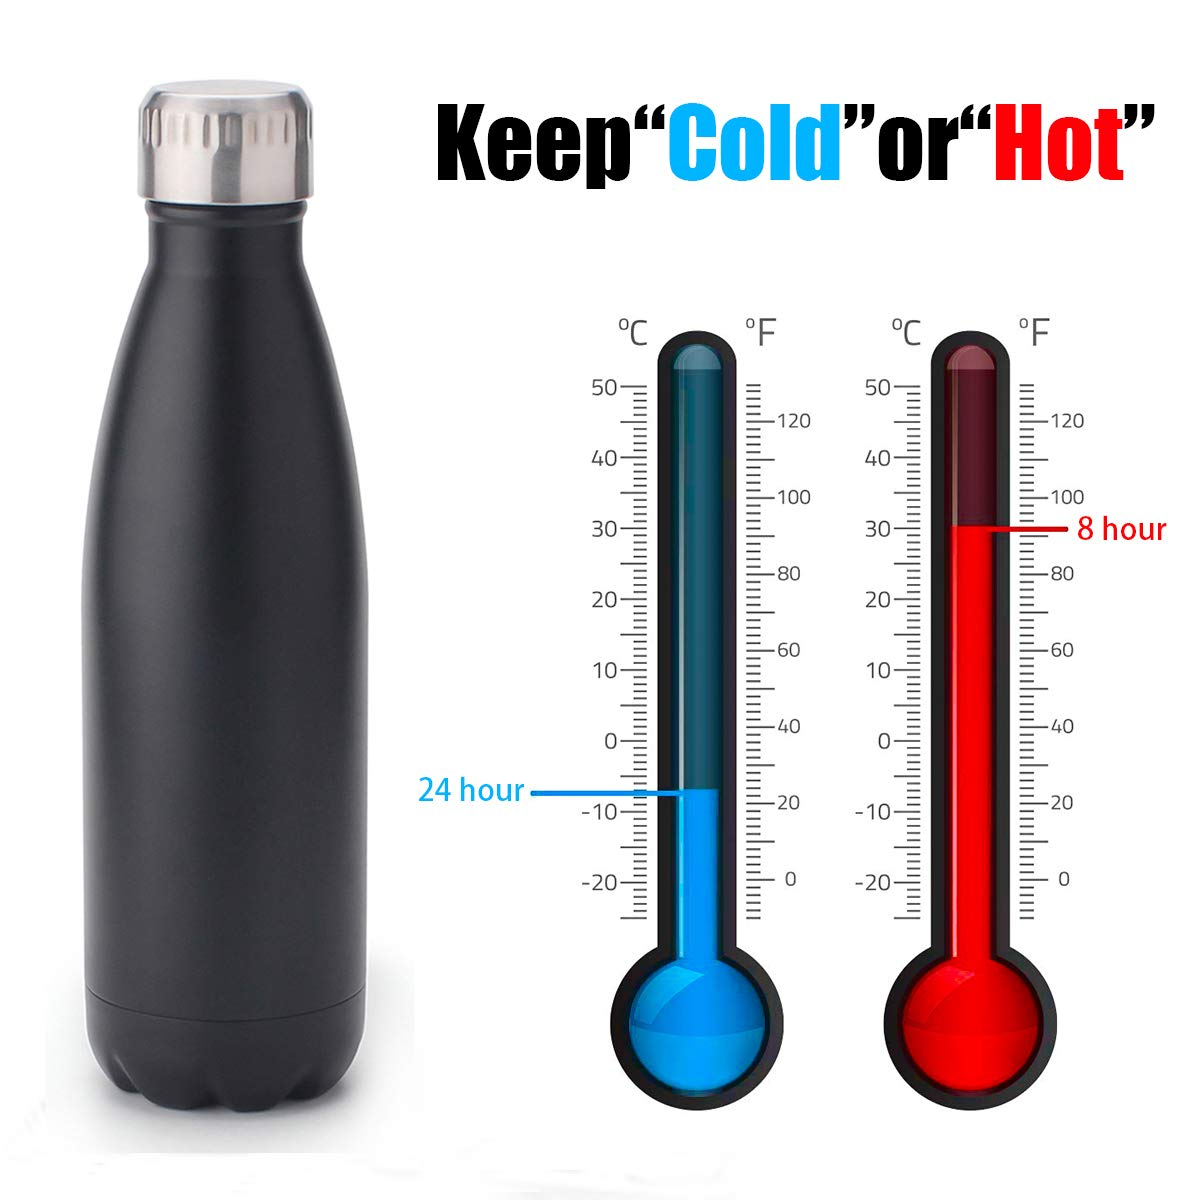 500 ml mininoo Stainless Steel Vacuum Insulated Water Bottle 17oz Leak-Proof Double Walled BPA Free Flask Keeps Drinks Cold for 24 Hours /& Hot for 8 Hours